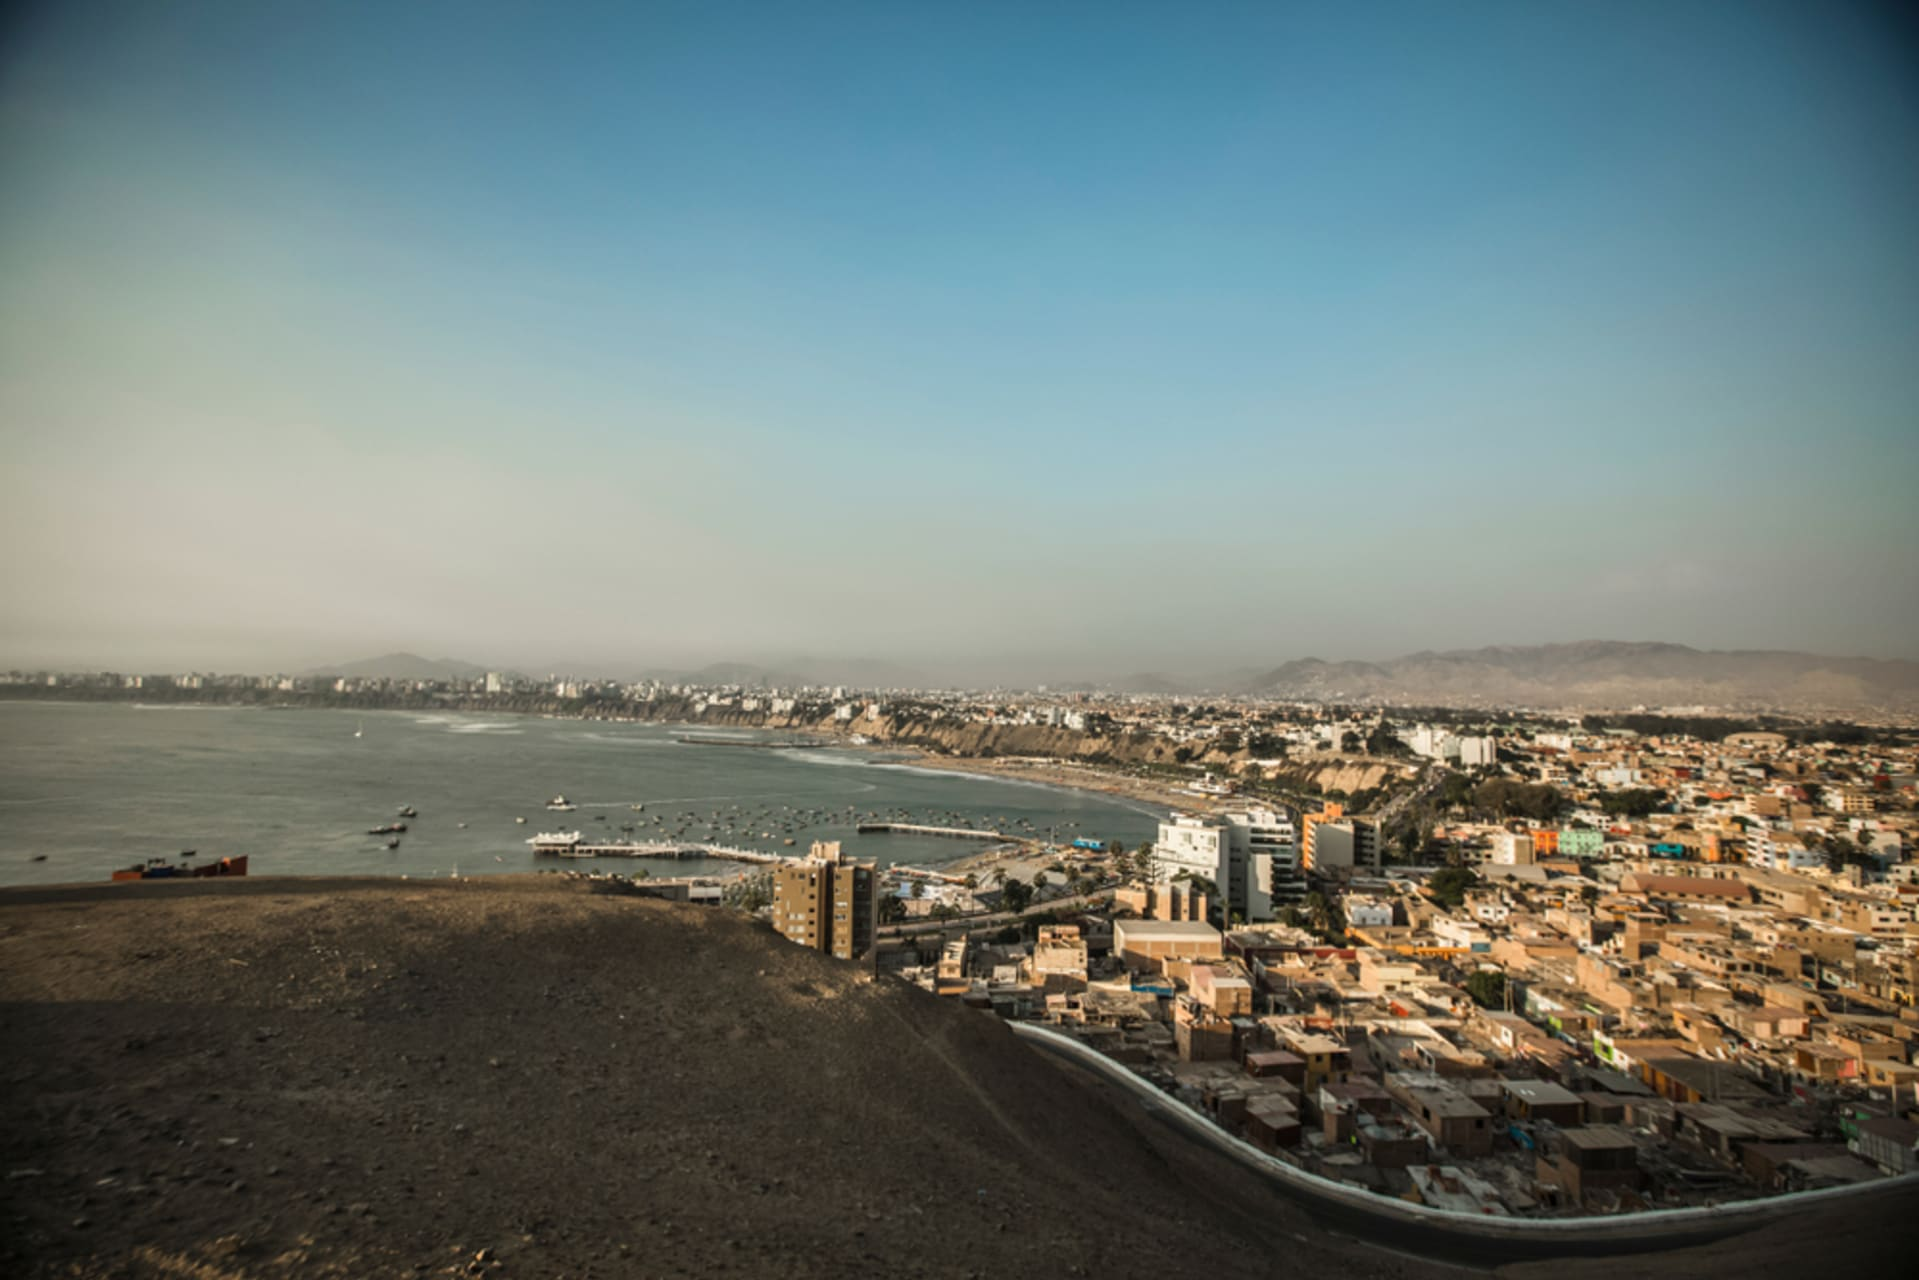 Lima - Chorrillos: The best viewpoint of Lima